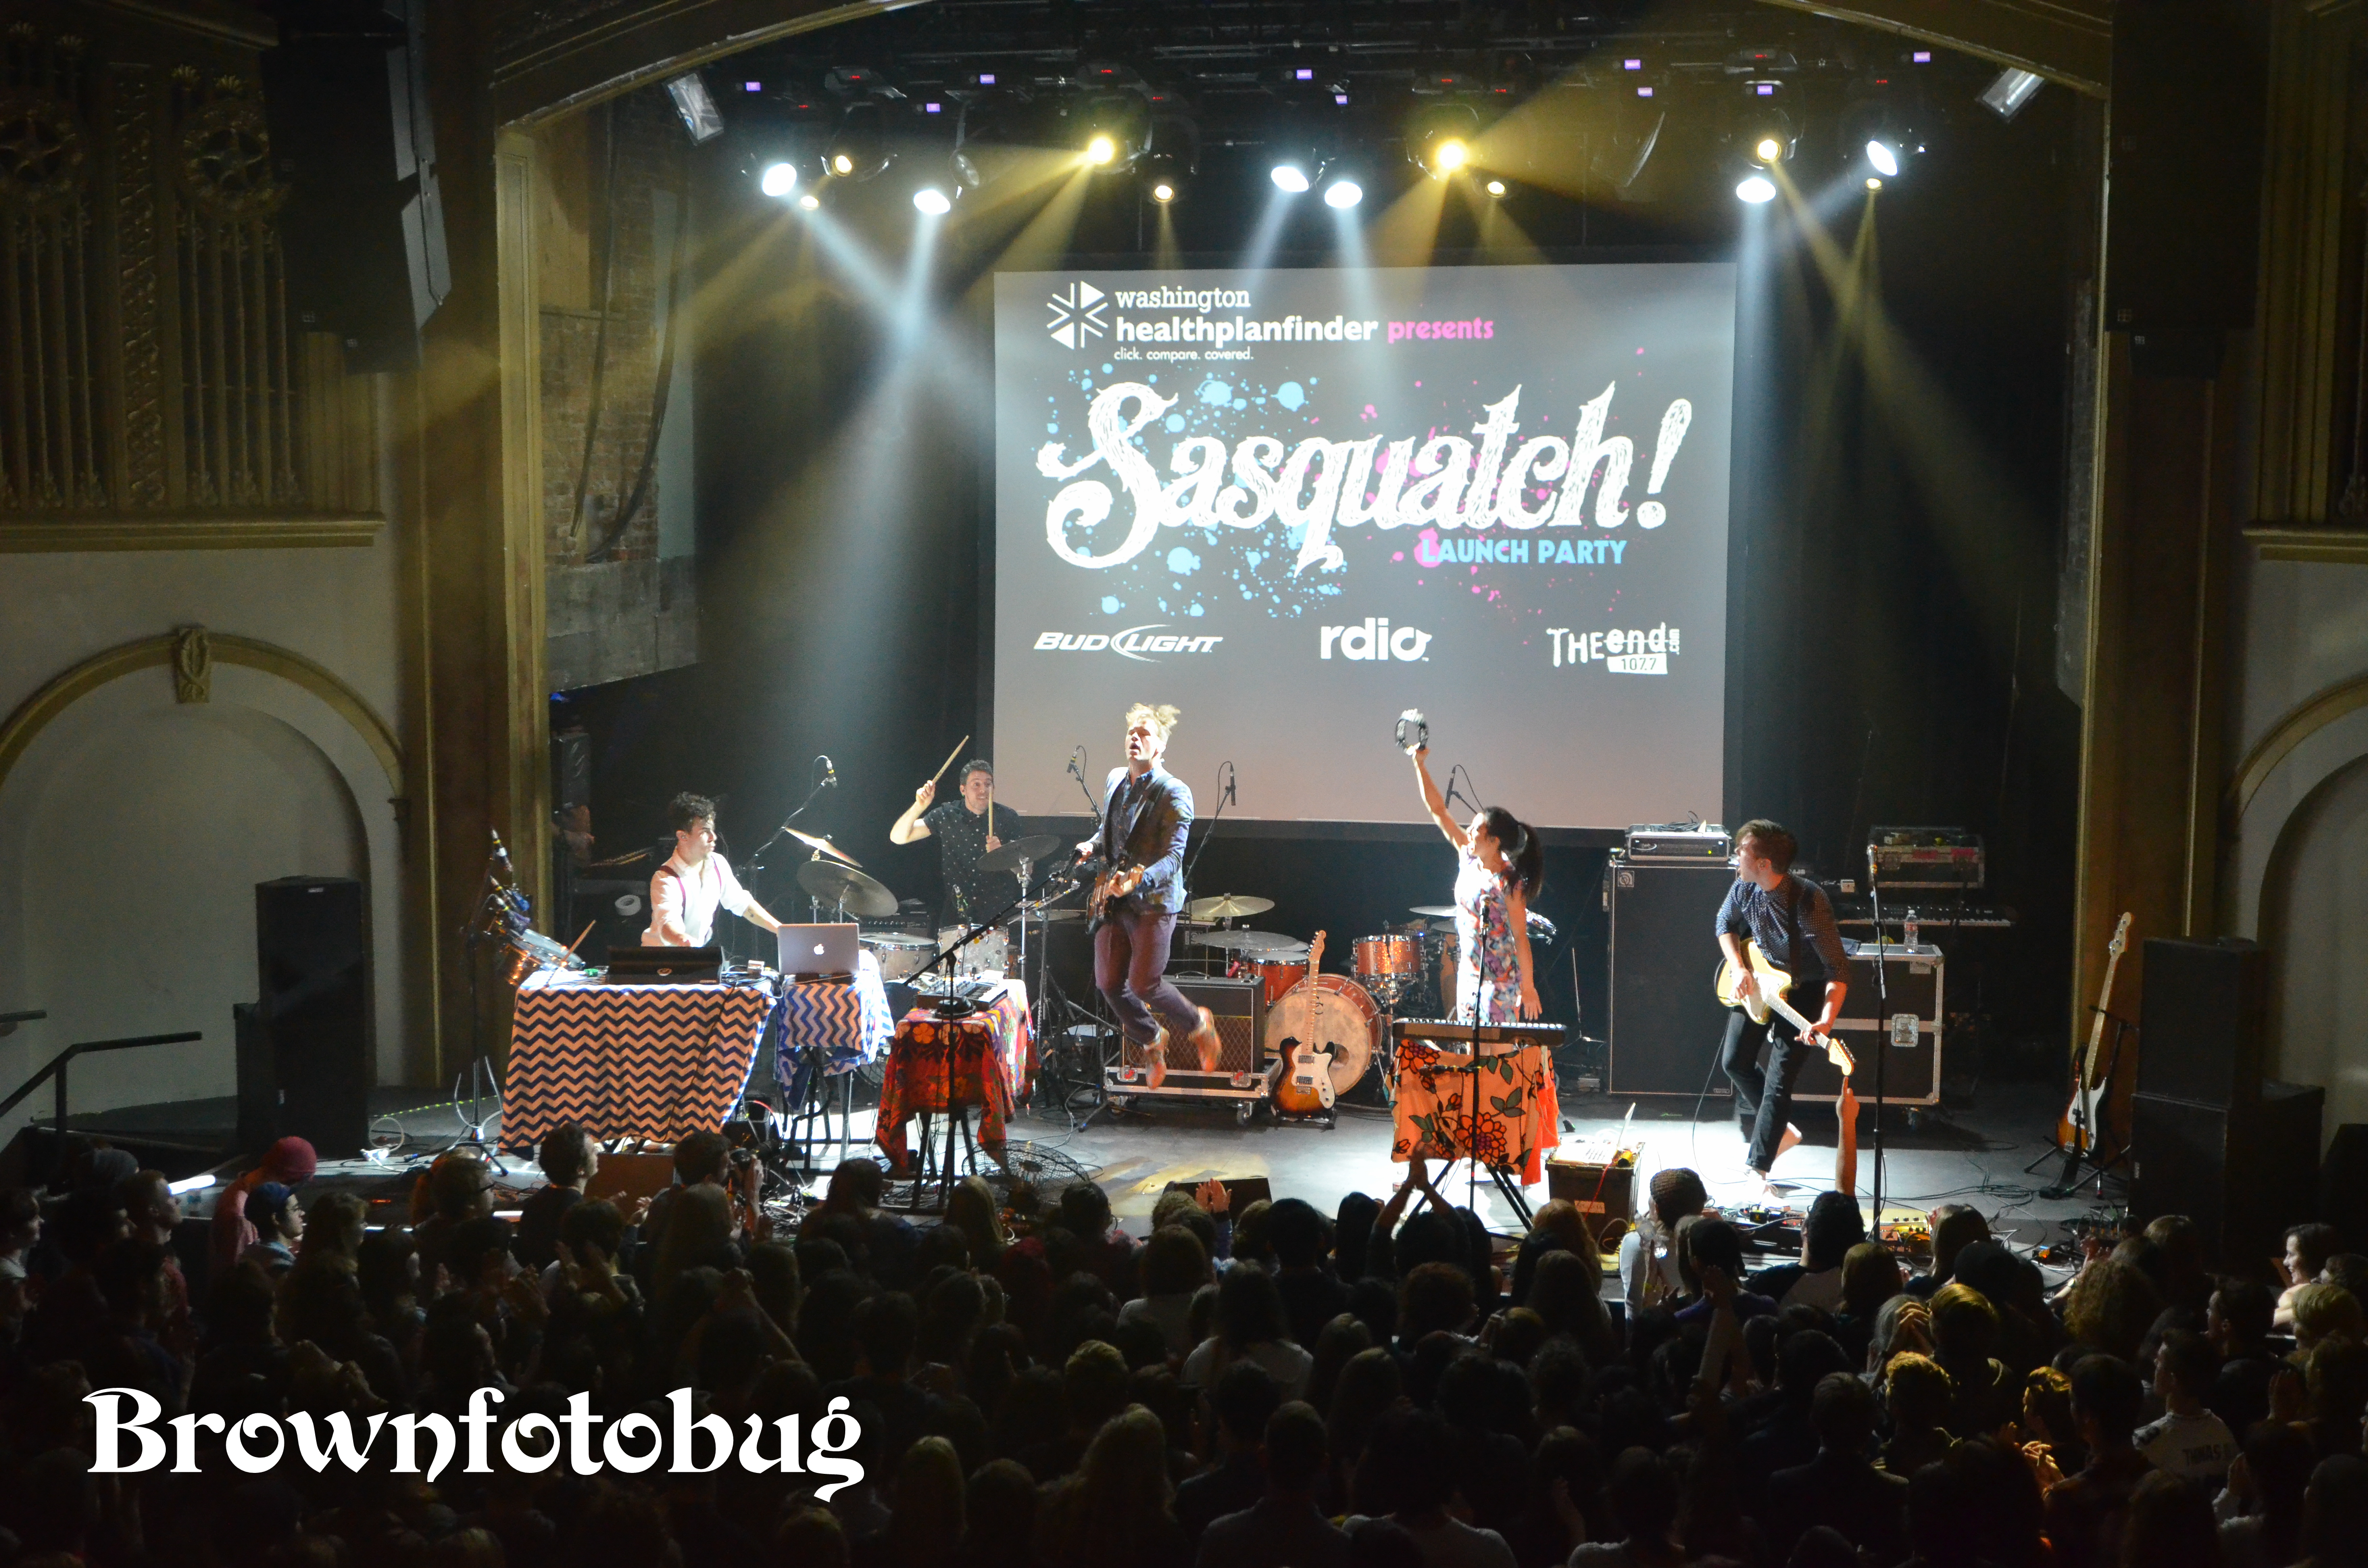 Sasquatch! 2014 Launch Party (Photo by Arlene Brown)